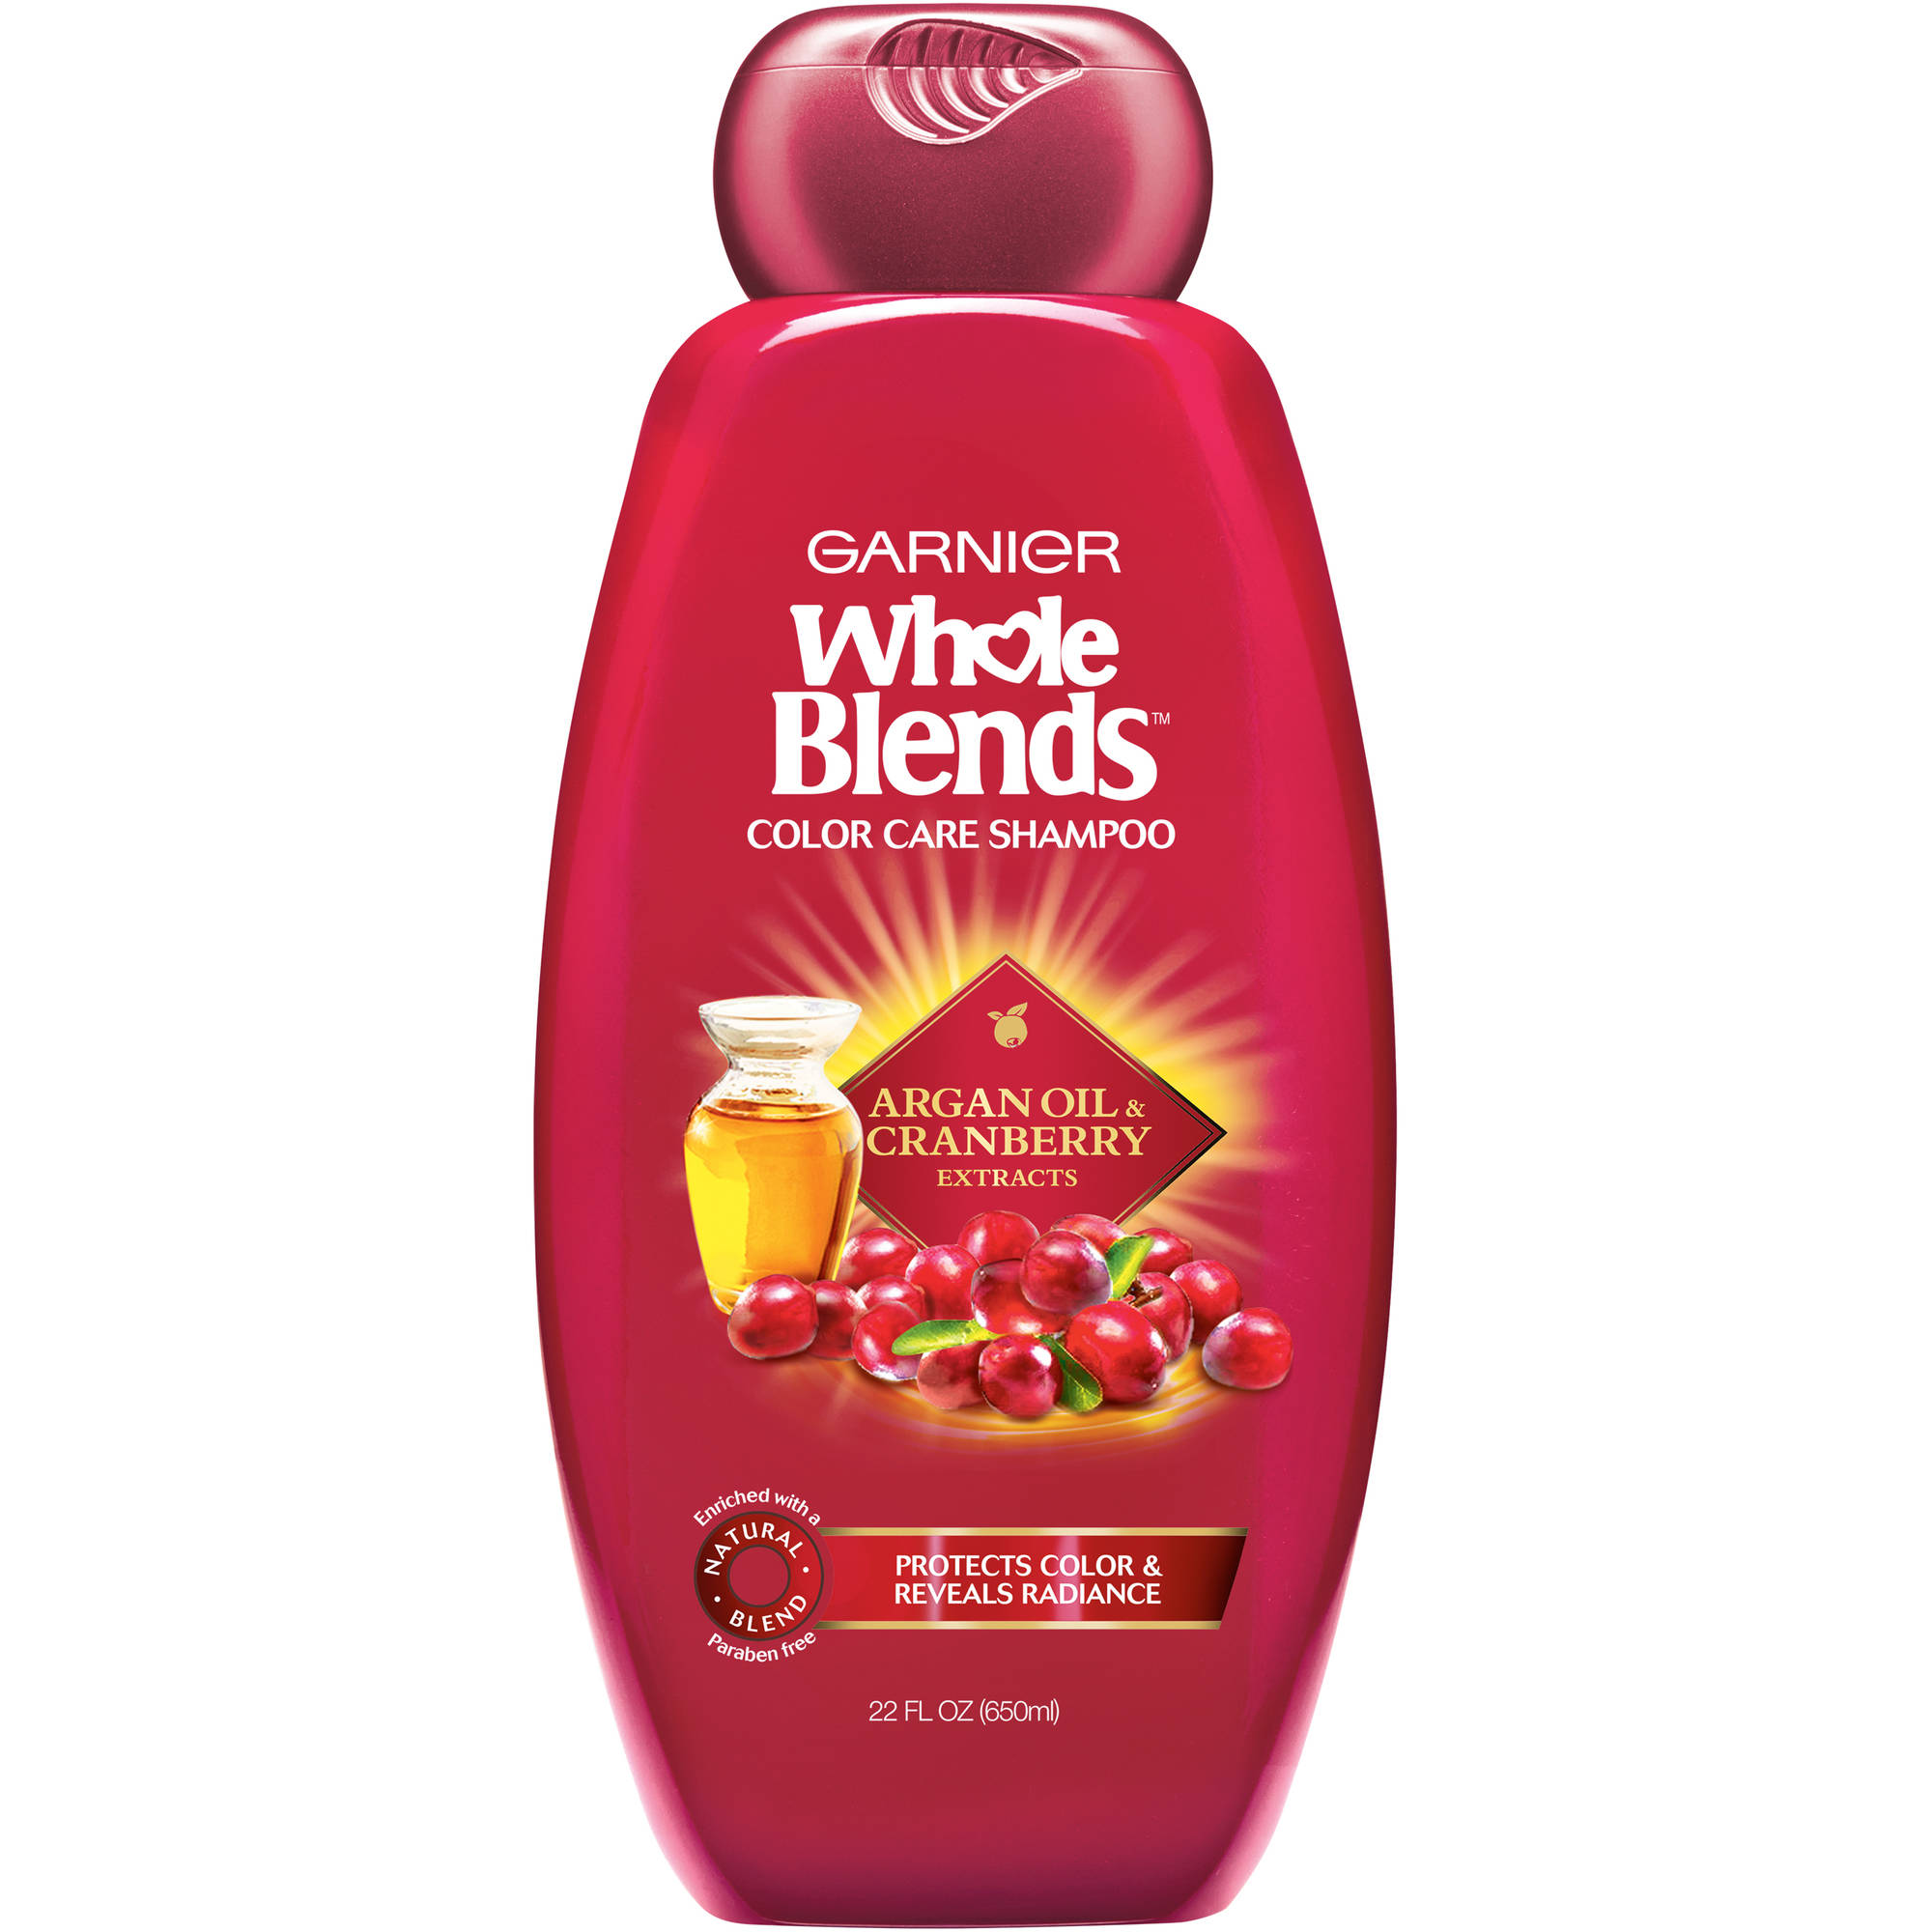 Garnier Whole Blends Argan Oil and Cranberry Extracts Color Care Shampoo, 22 fl oz